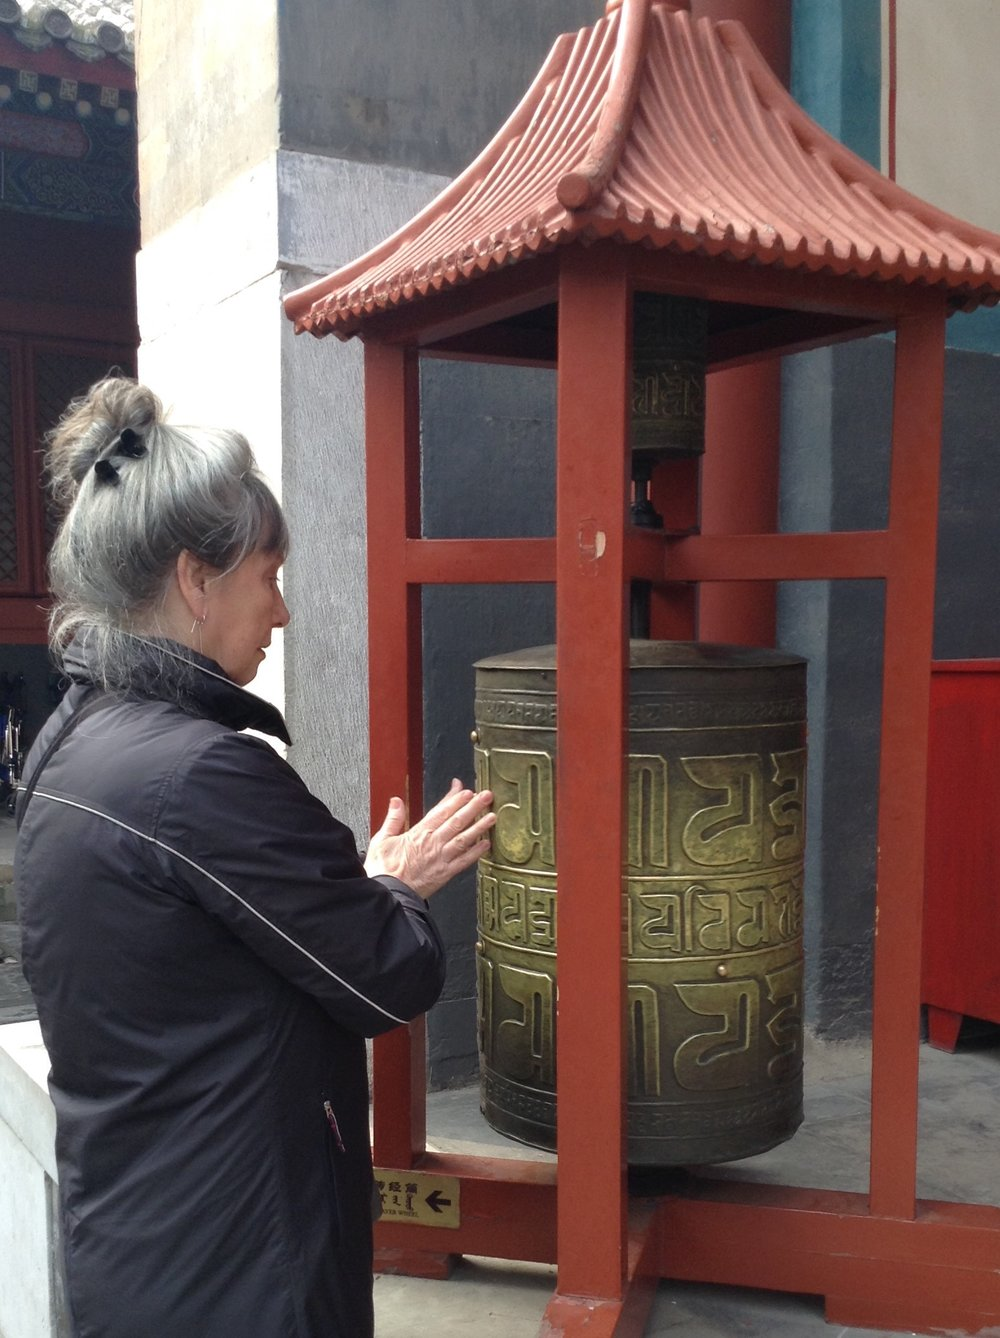 Moira on her trip to China this year.